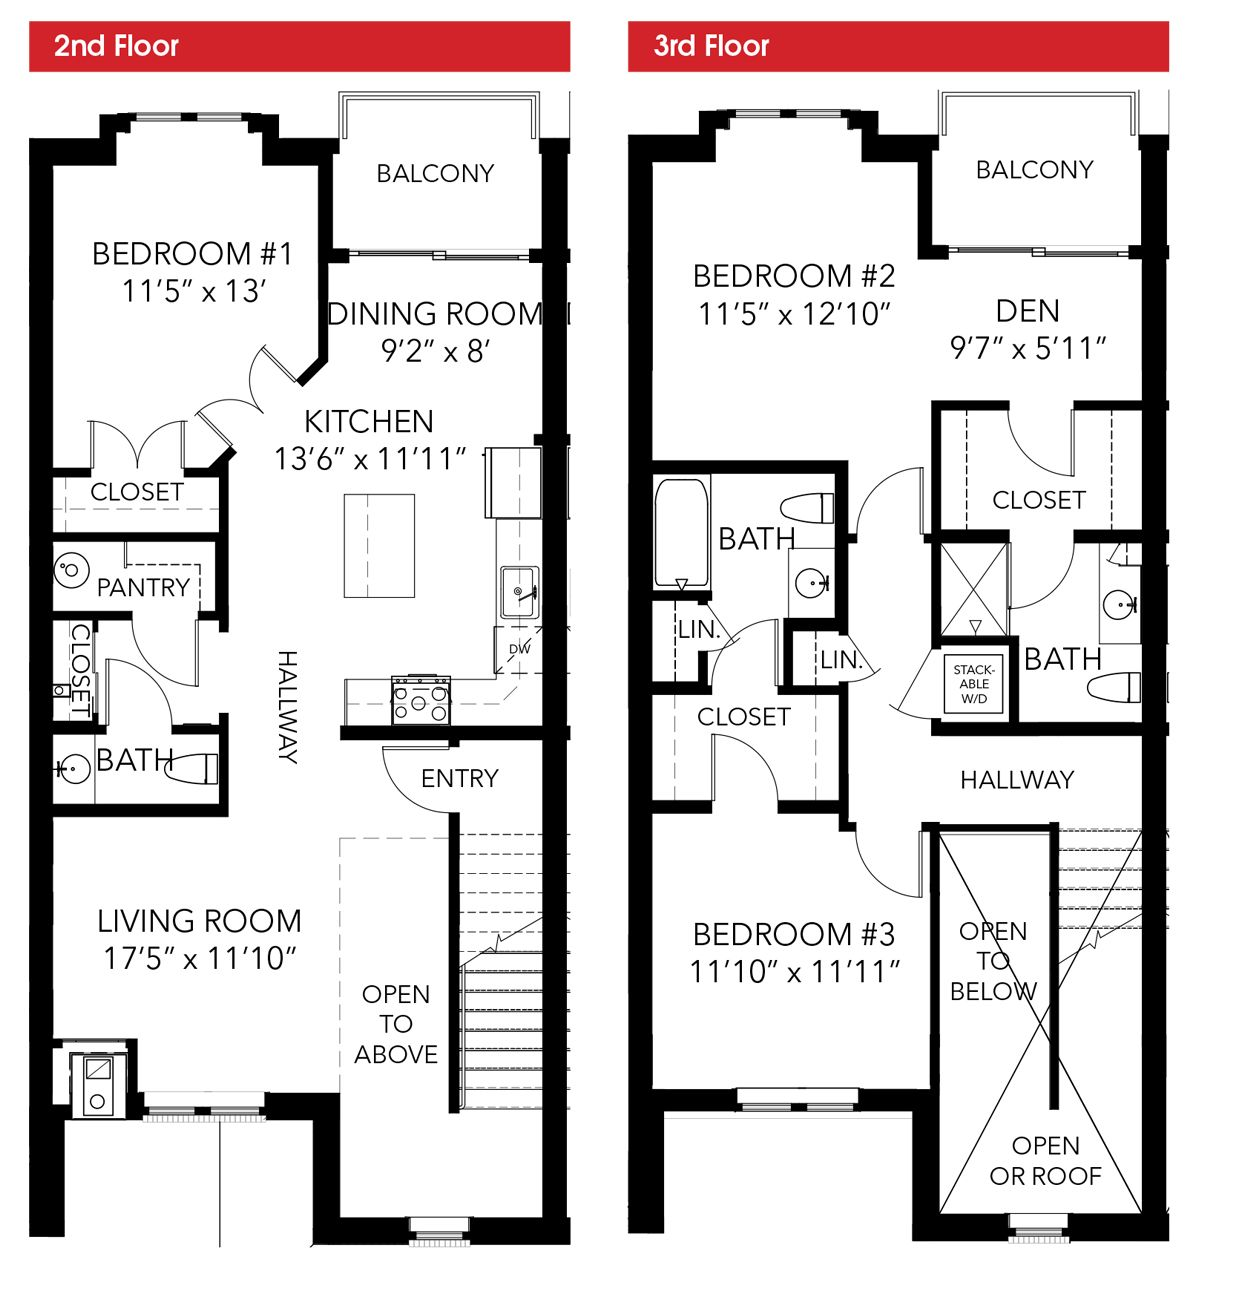 Oakbourne floor plan 3 bedroom 2 story leed certified for 1 story townhouse plans